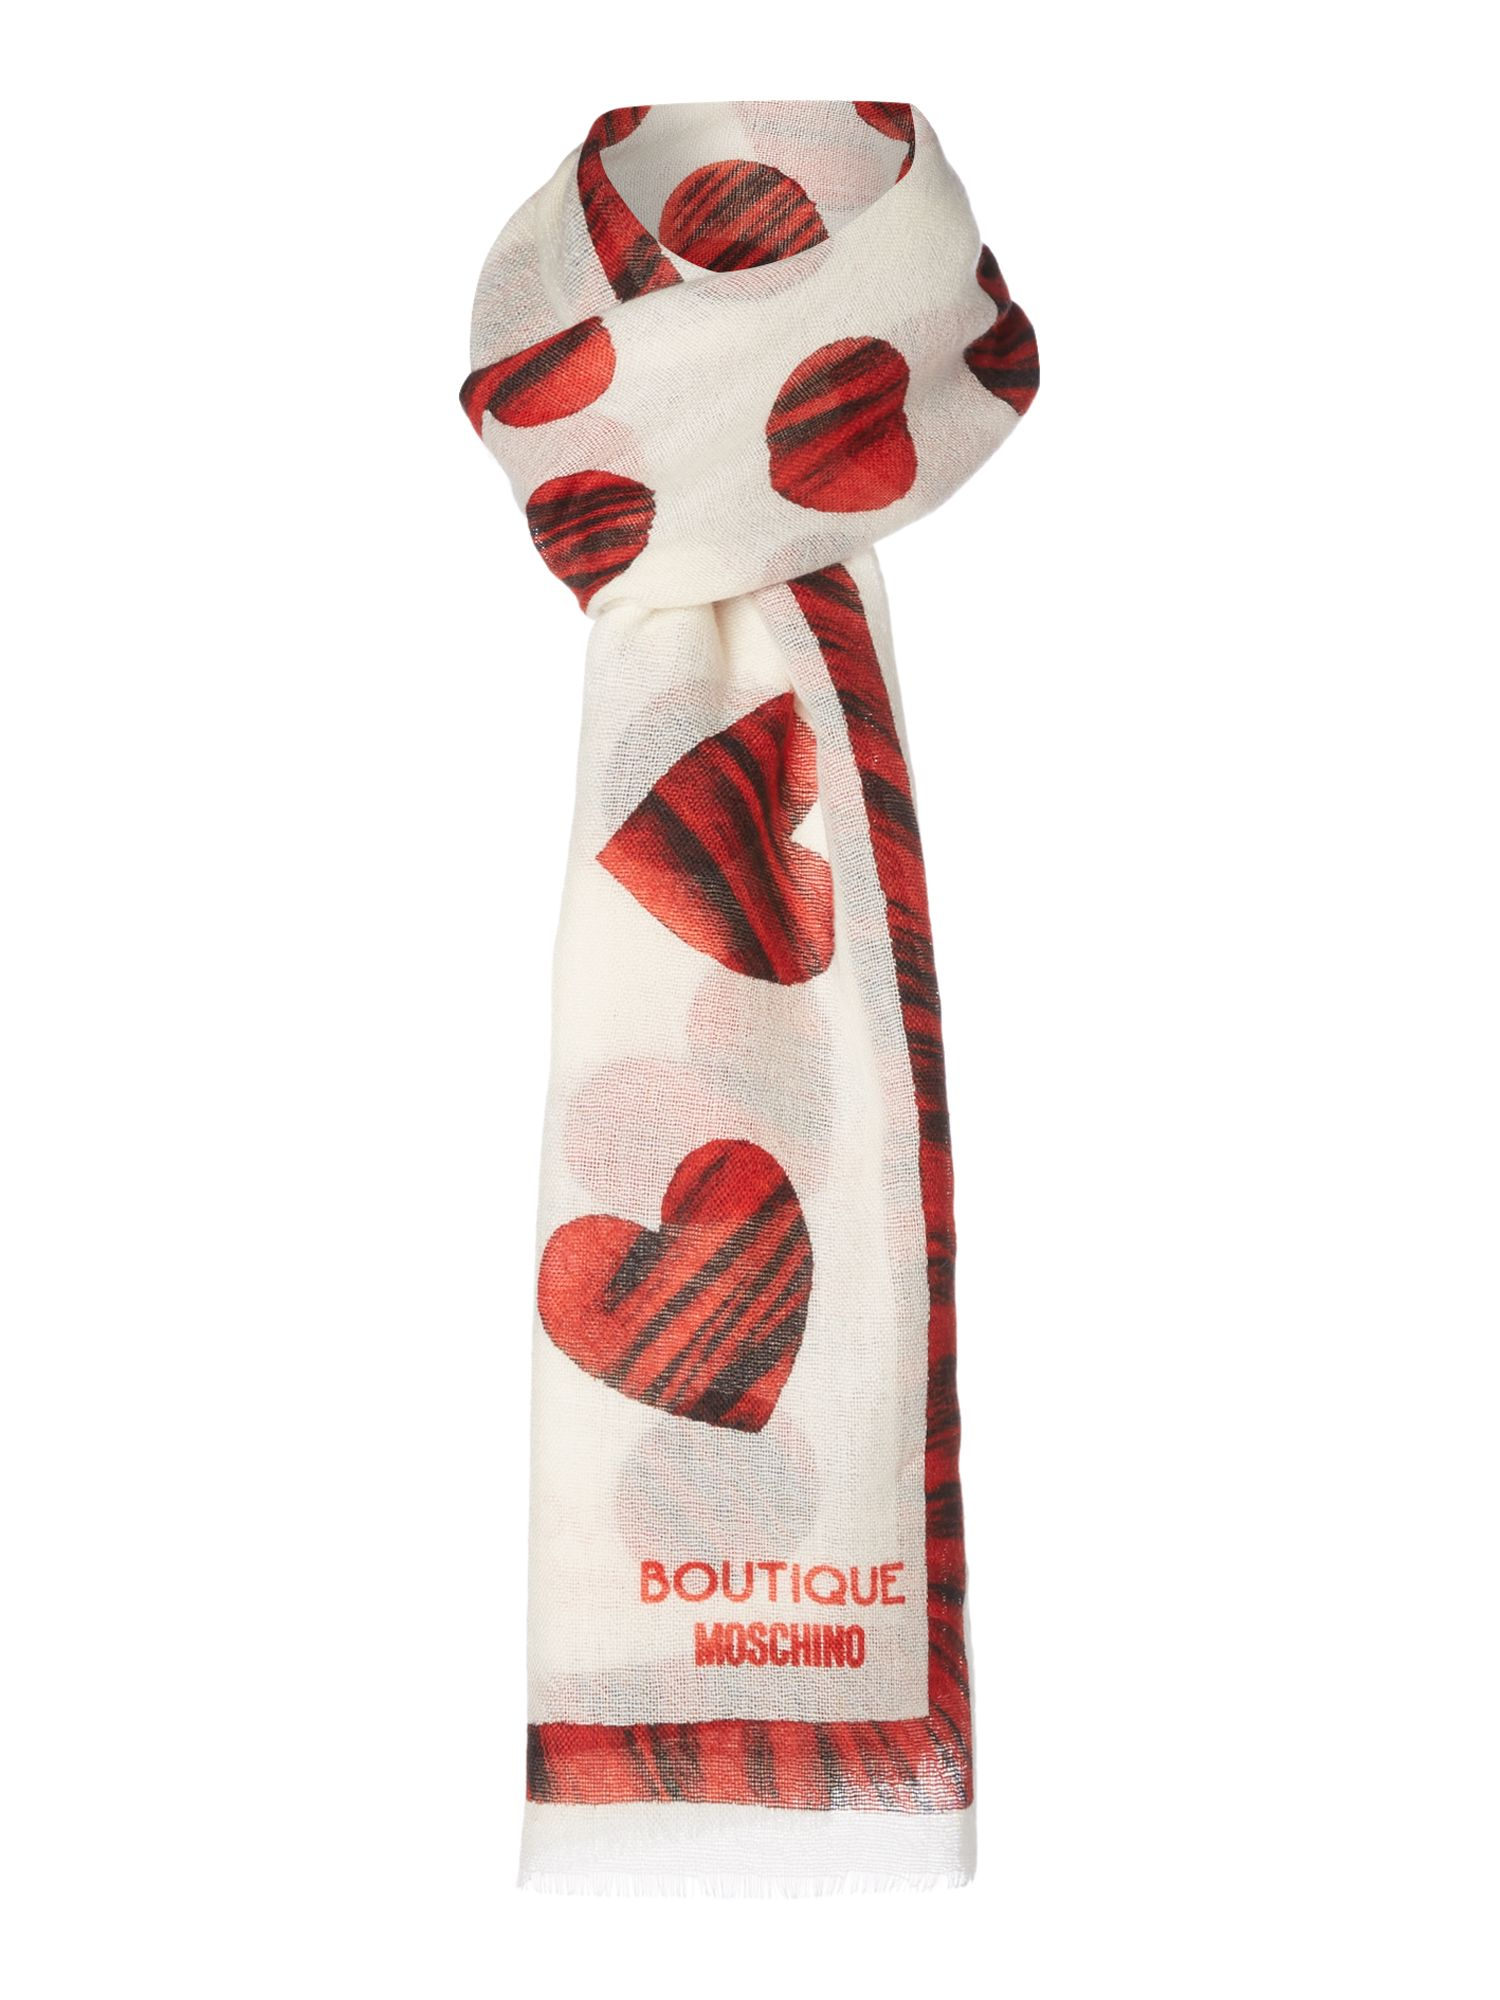 Boutique Moschino Boutique Moschino Lightweight wool heart print scarf, Cream